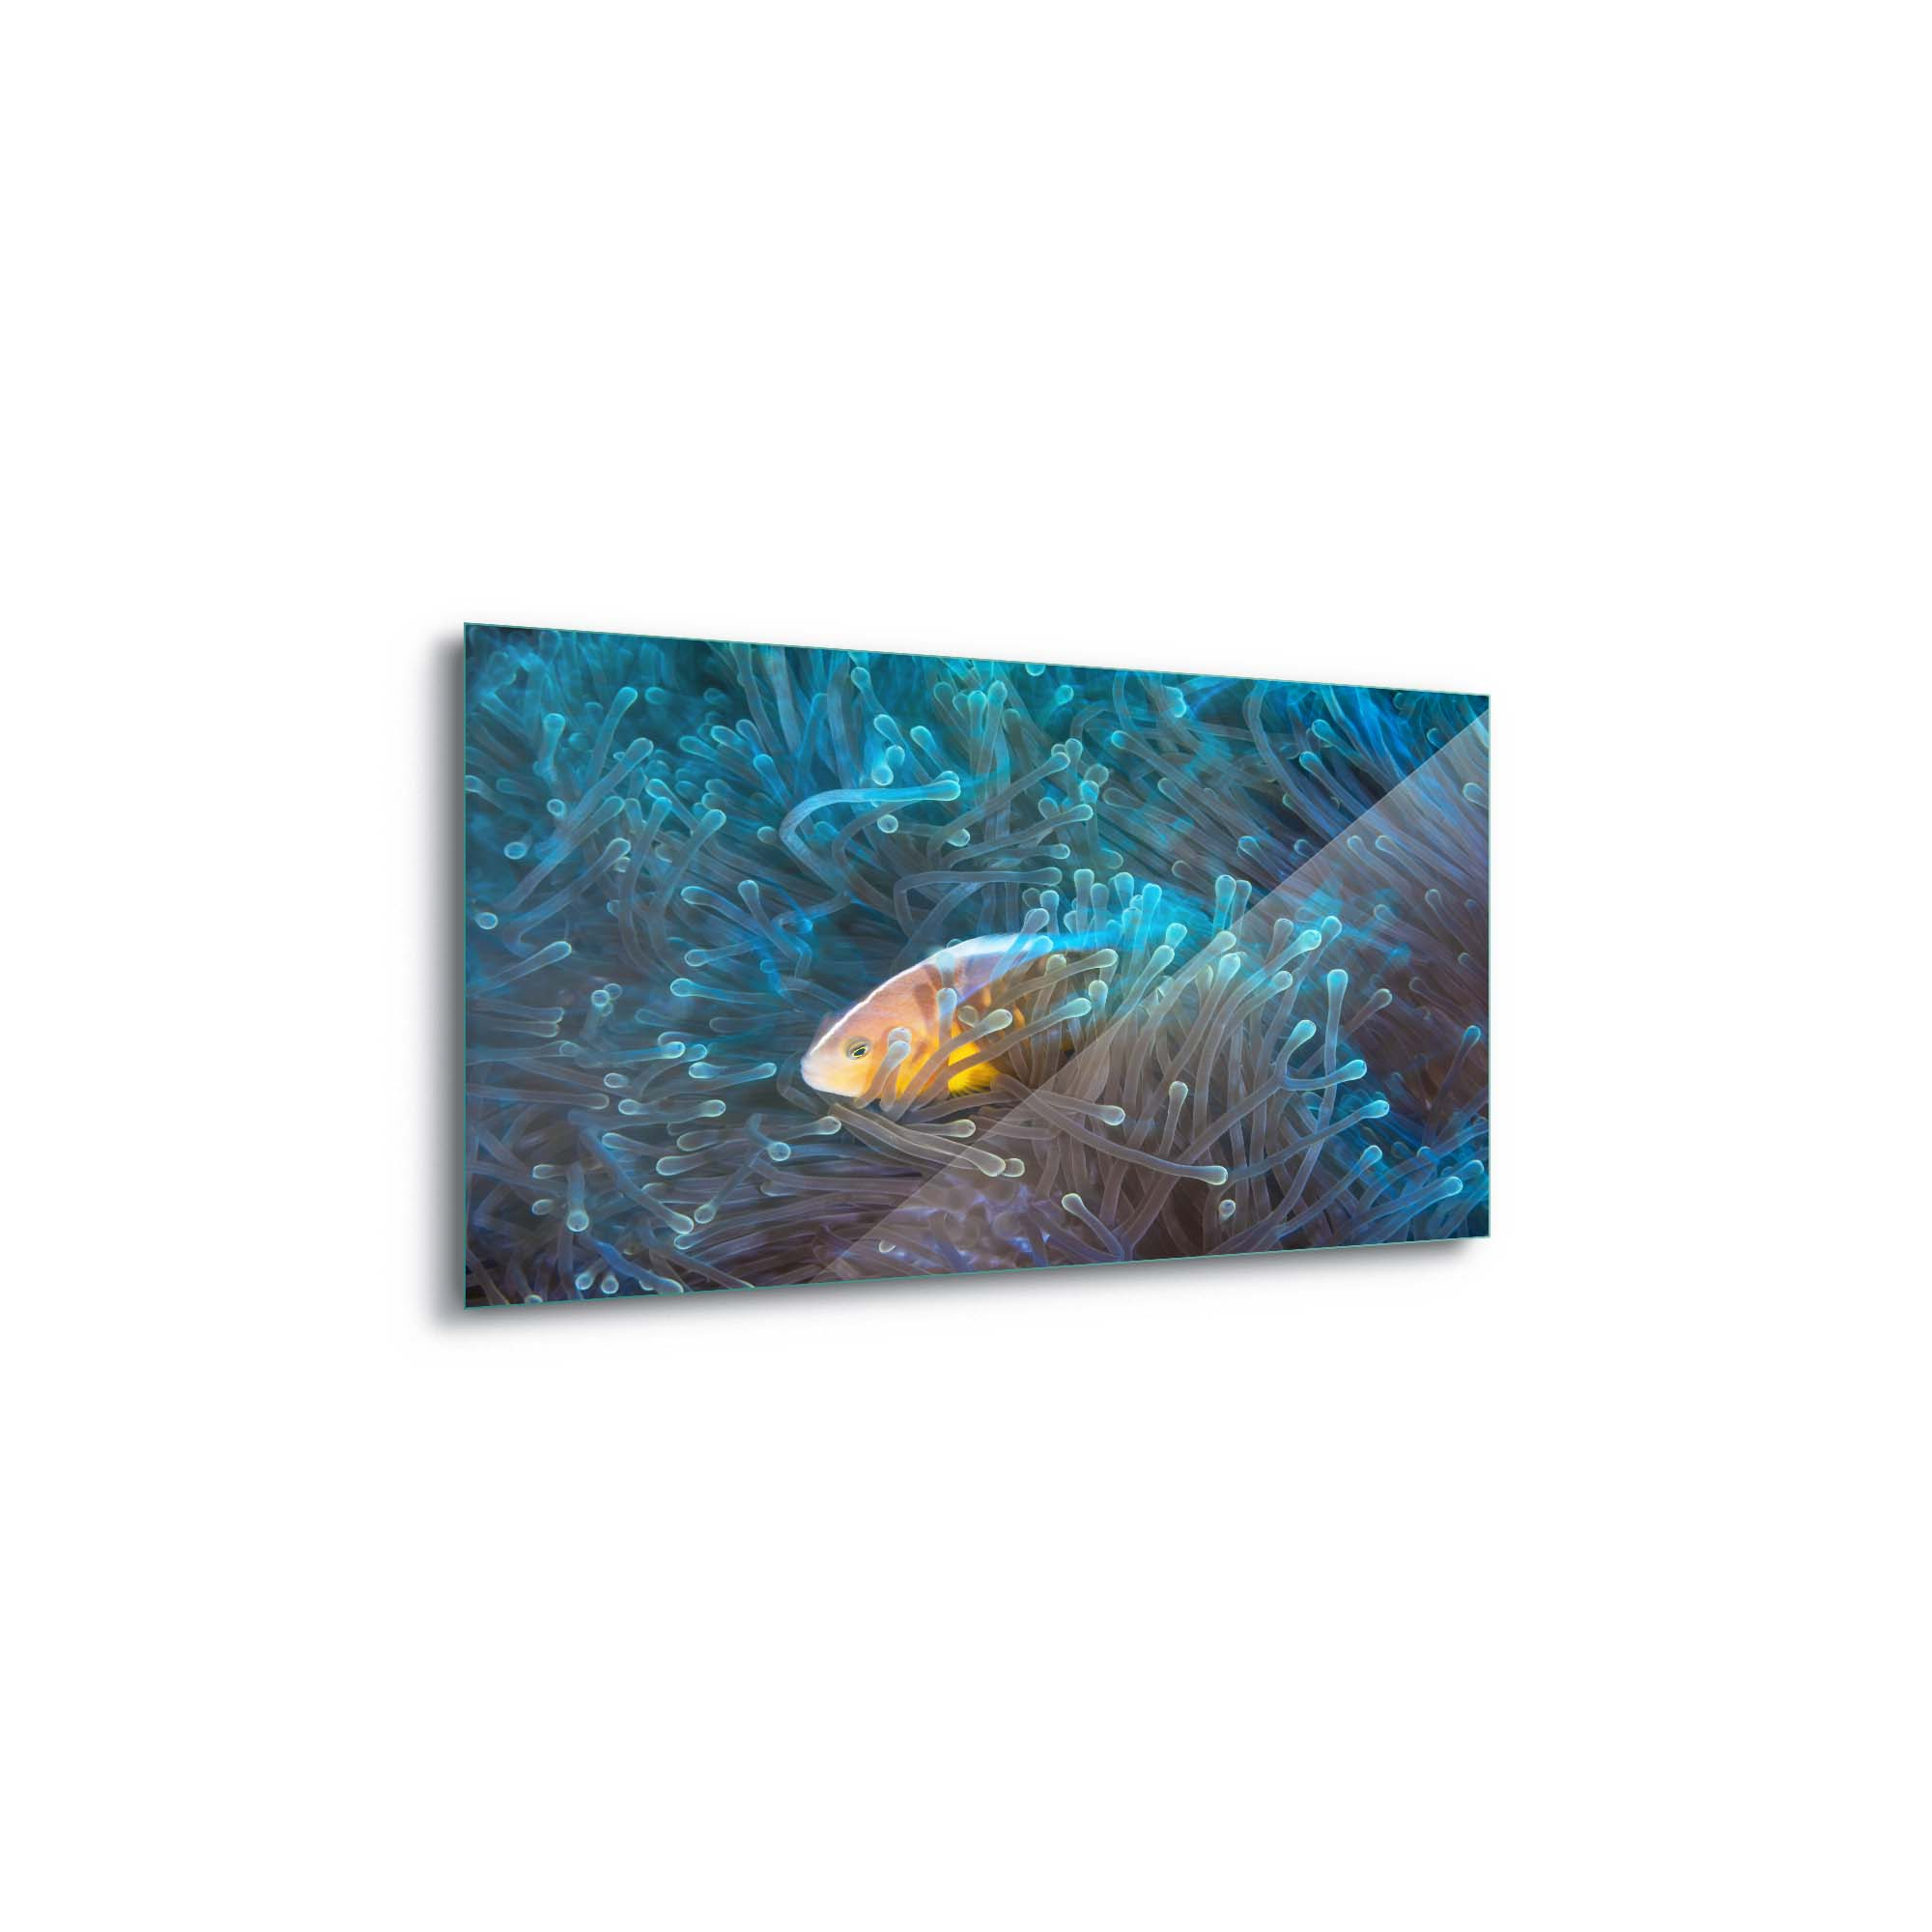 Glass printed Clownfish in The Sea